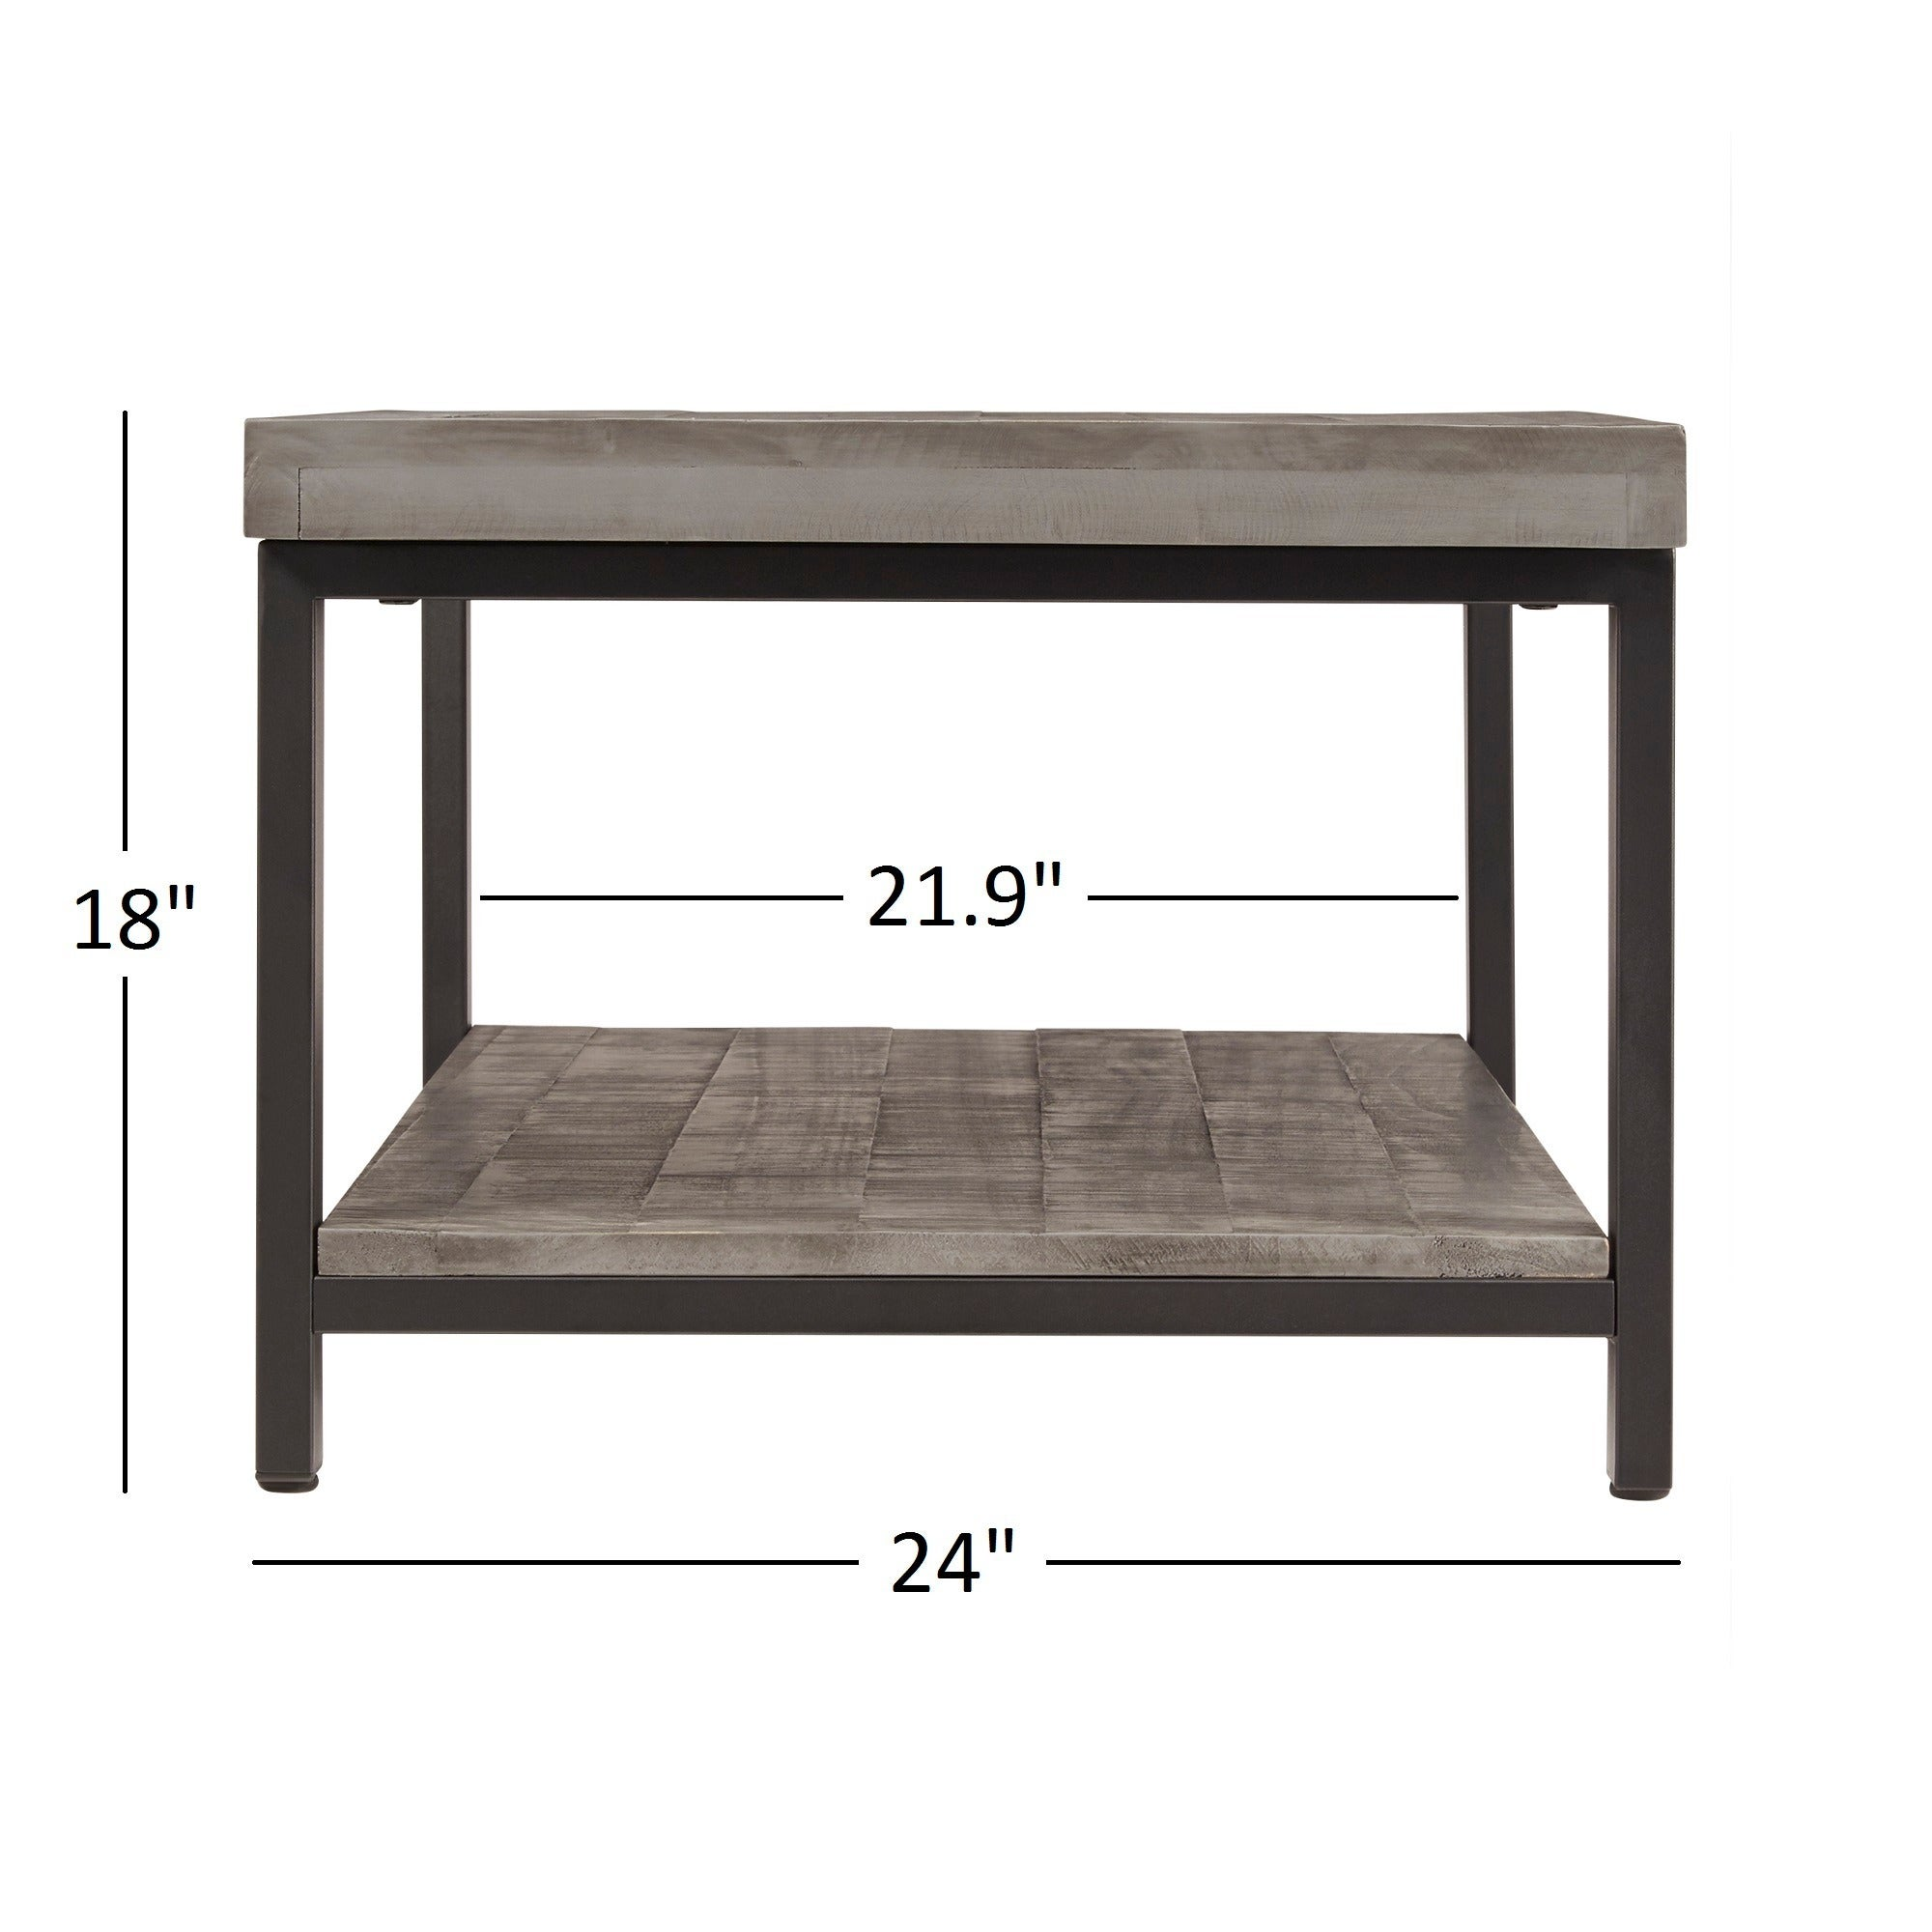 Cyra Industrial Reclaimed Rectangular Coffee Table by iNSPIRE Q Classic -  Free Shipping Today - Overstock.com - 18170856